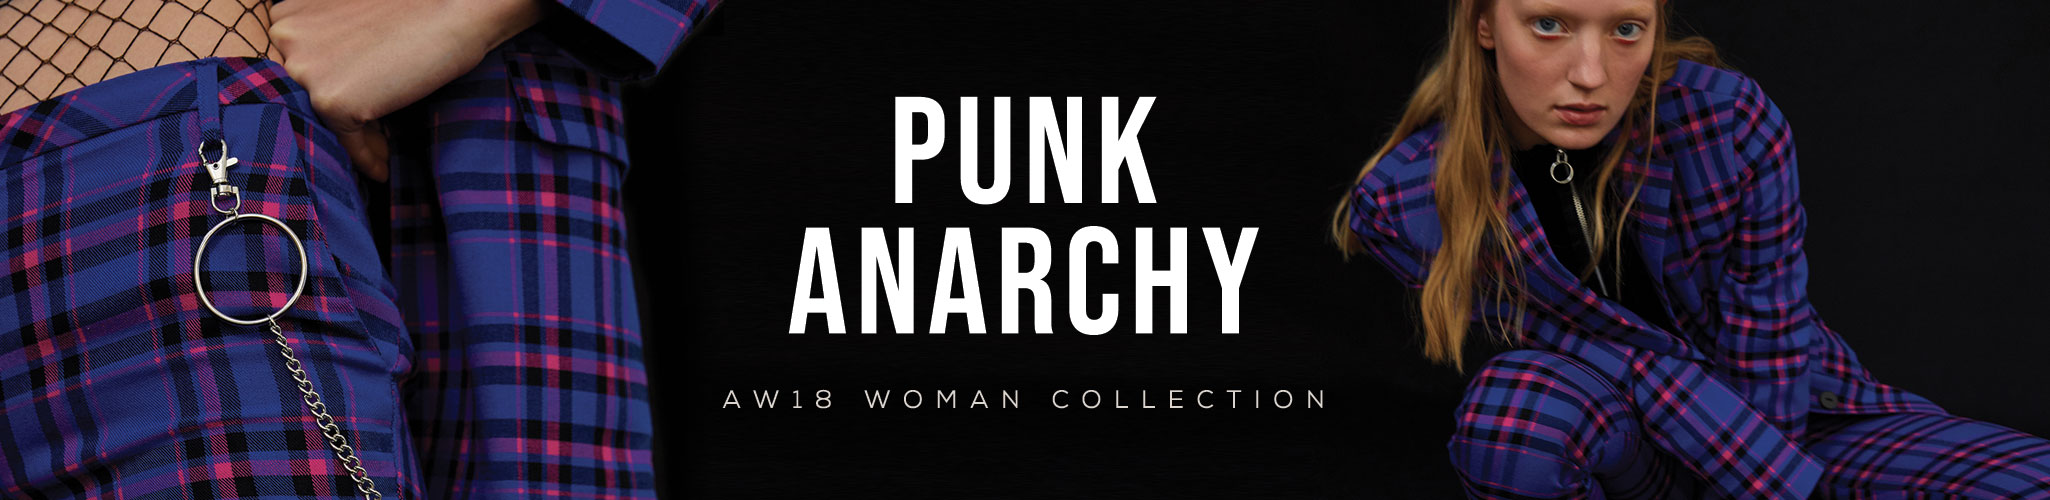 Punk Anarchy | OVS